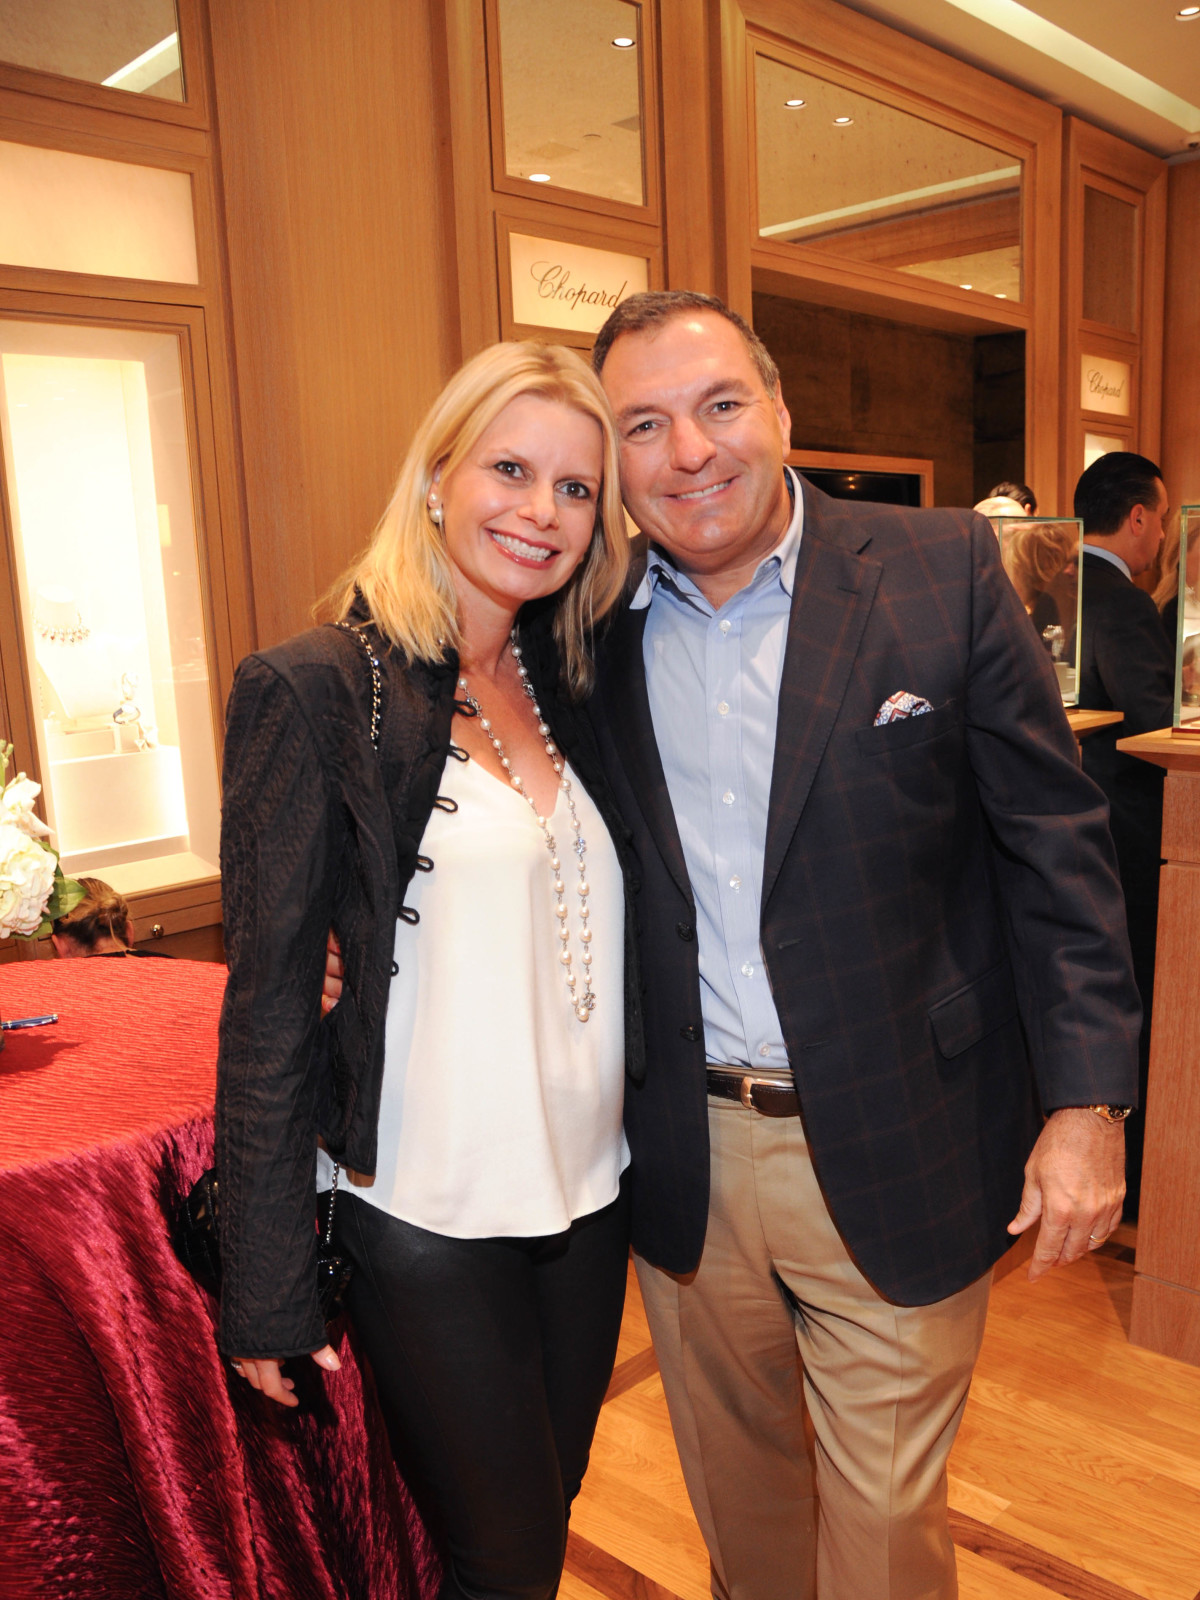 News, Shelby, Chopard opening, Oct. 2015, Valerie Dieterich, Tracy Dieterich